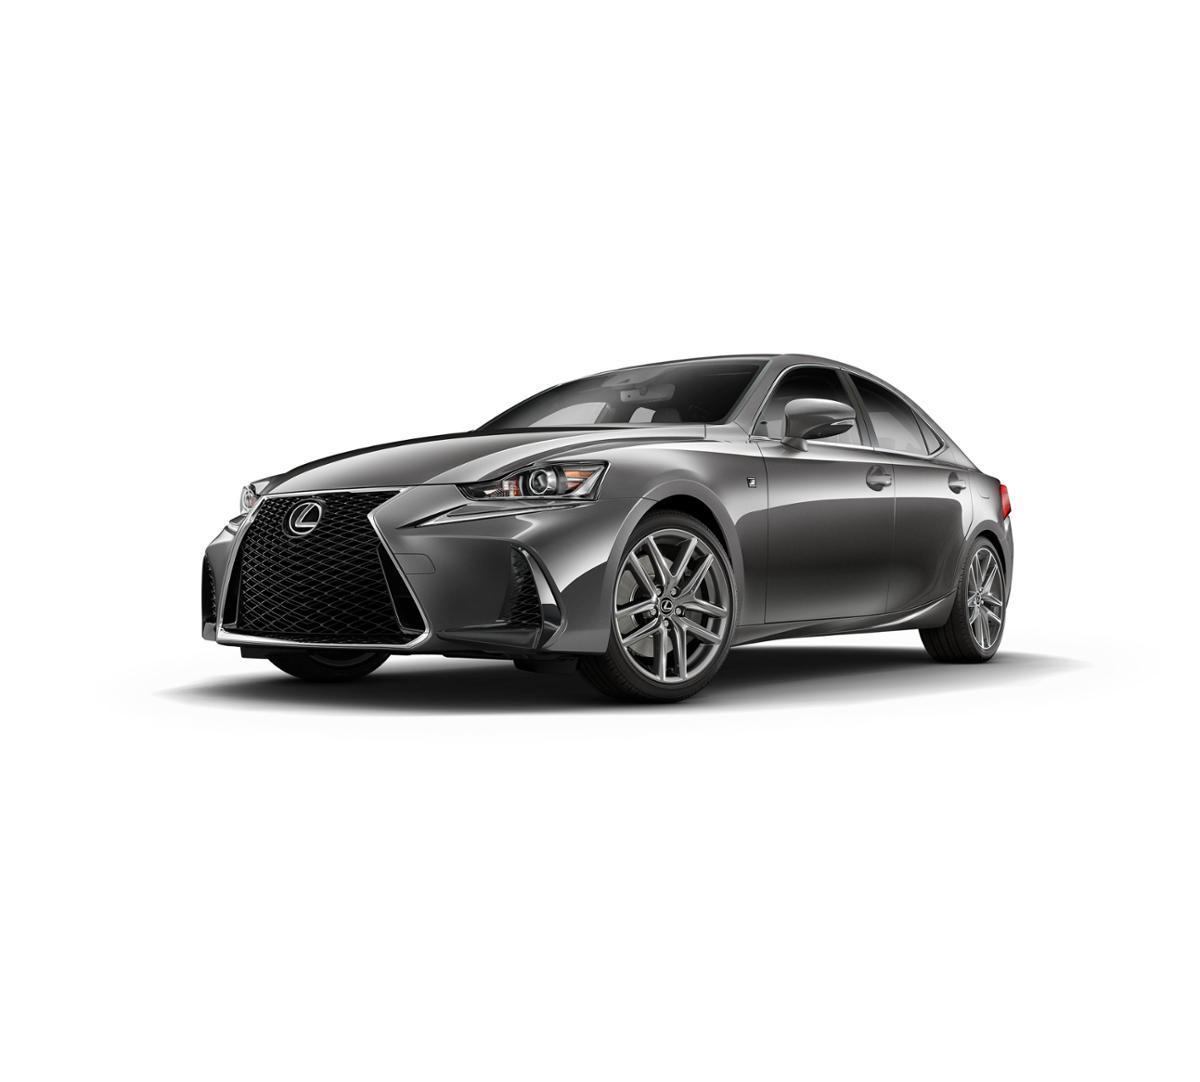 2018 Lexus IS 300 Vehicle Photo in Modesto, CA 95356